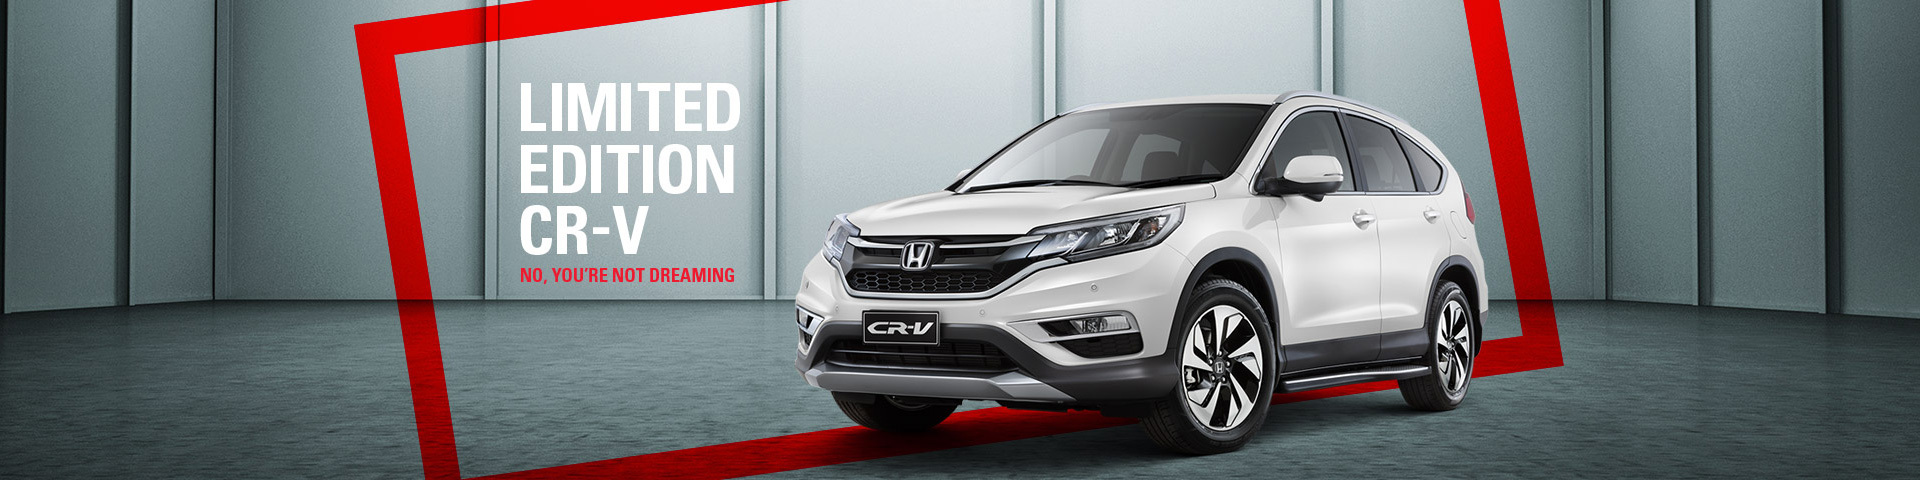 Honda Natioanl Offer - No You're Not Dreaming